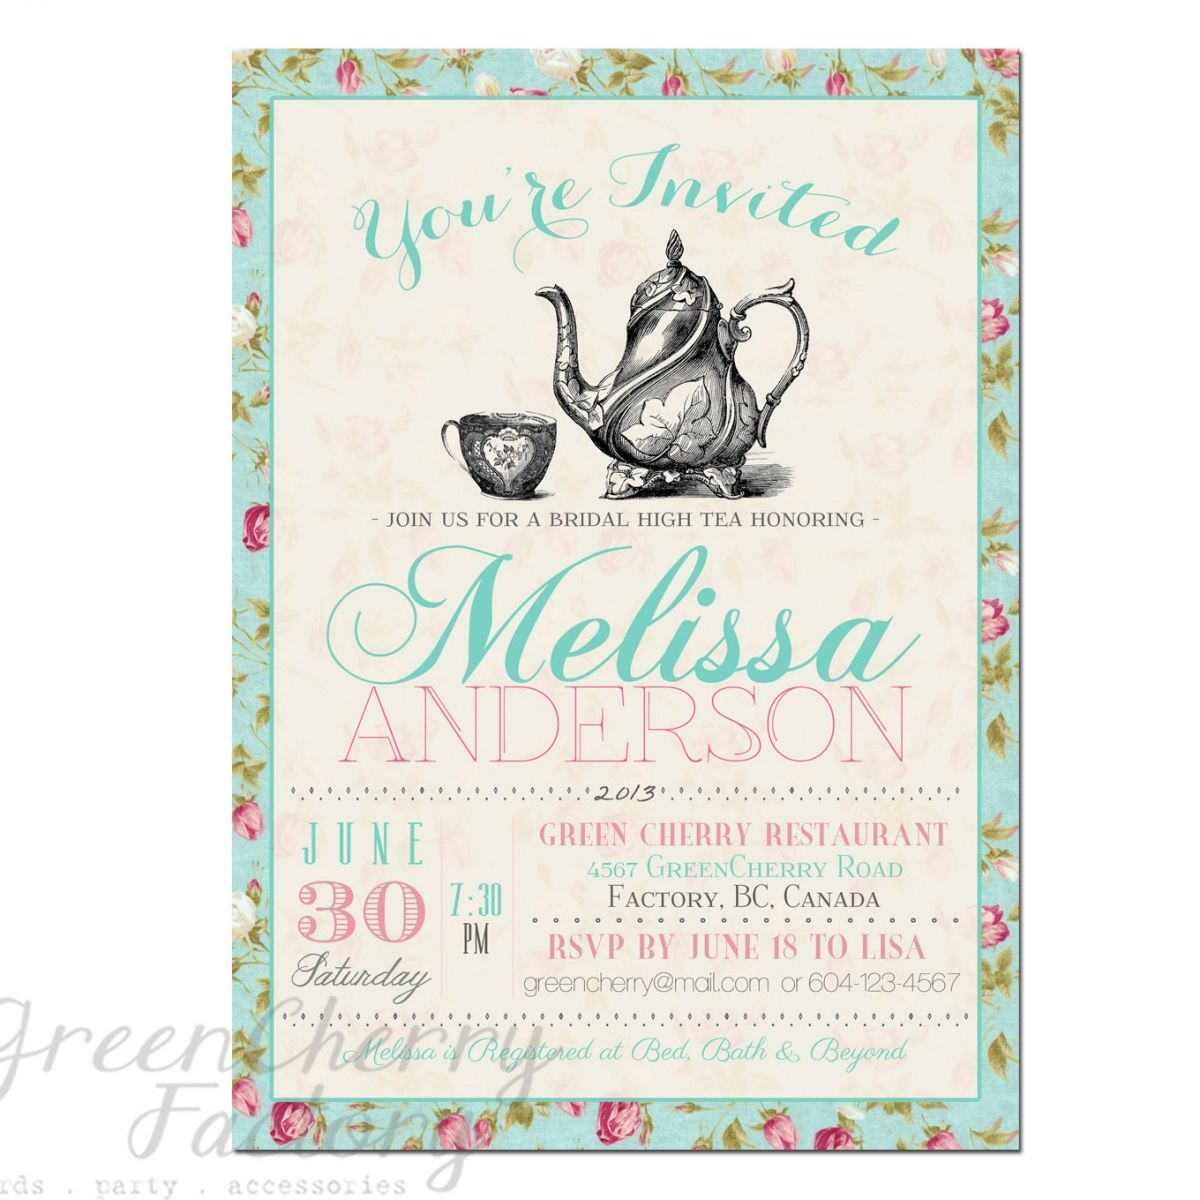 Tea Party Invitation Templates To Print Free Printable Tea Party - Tea party invitation template free